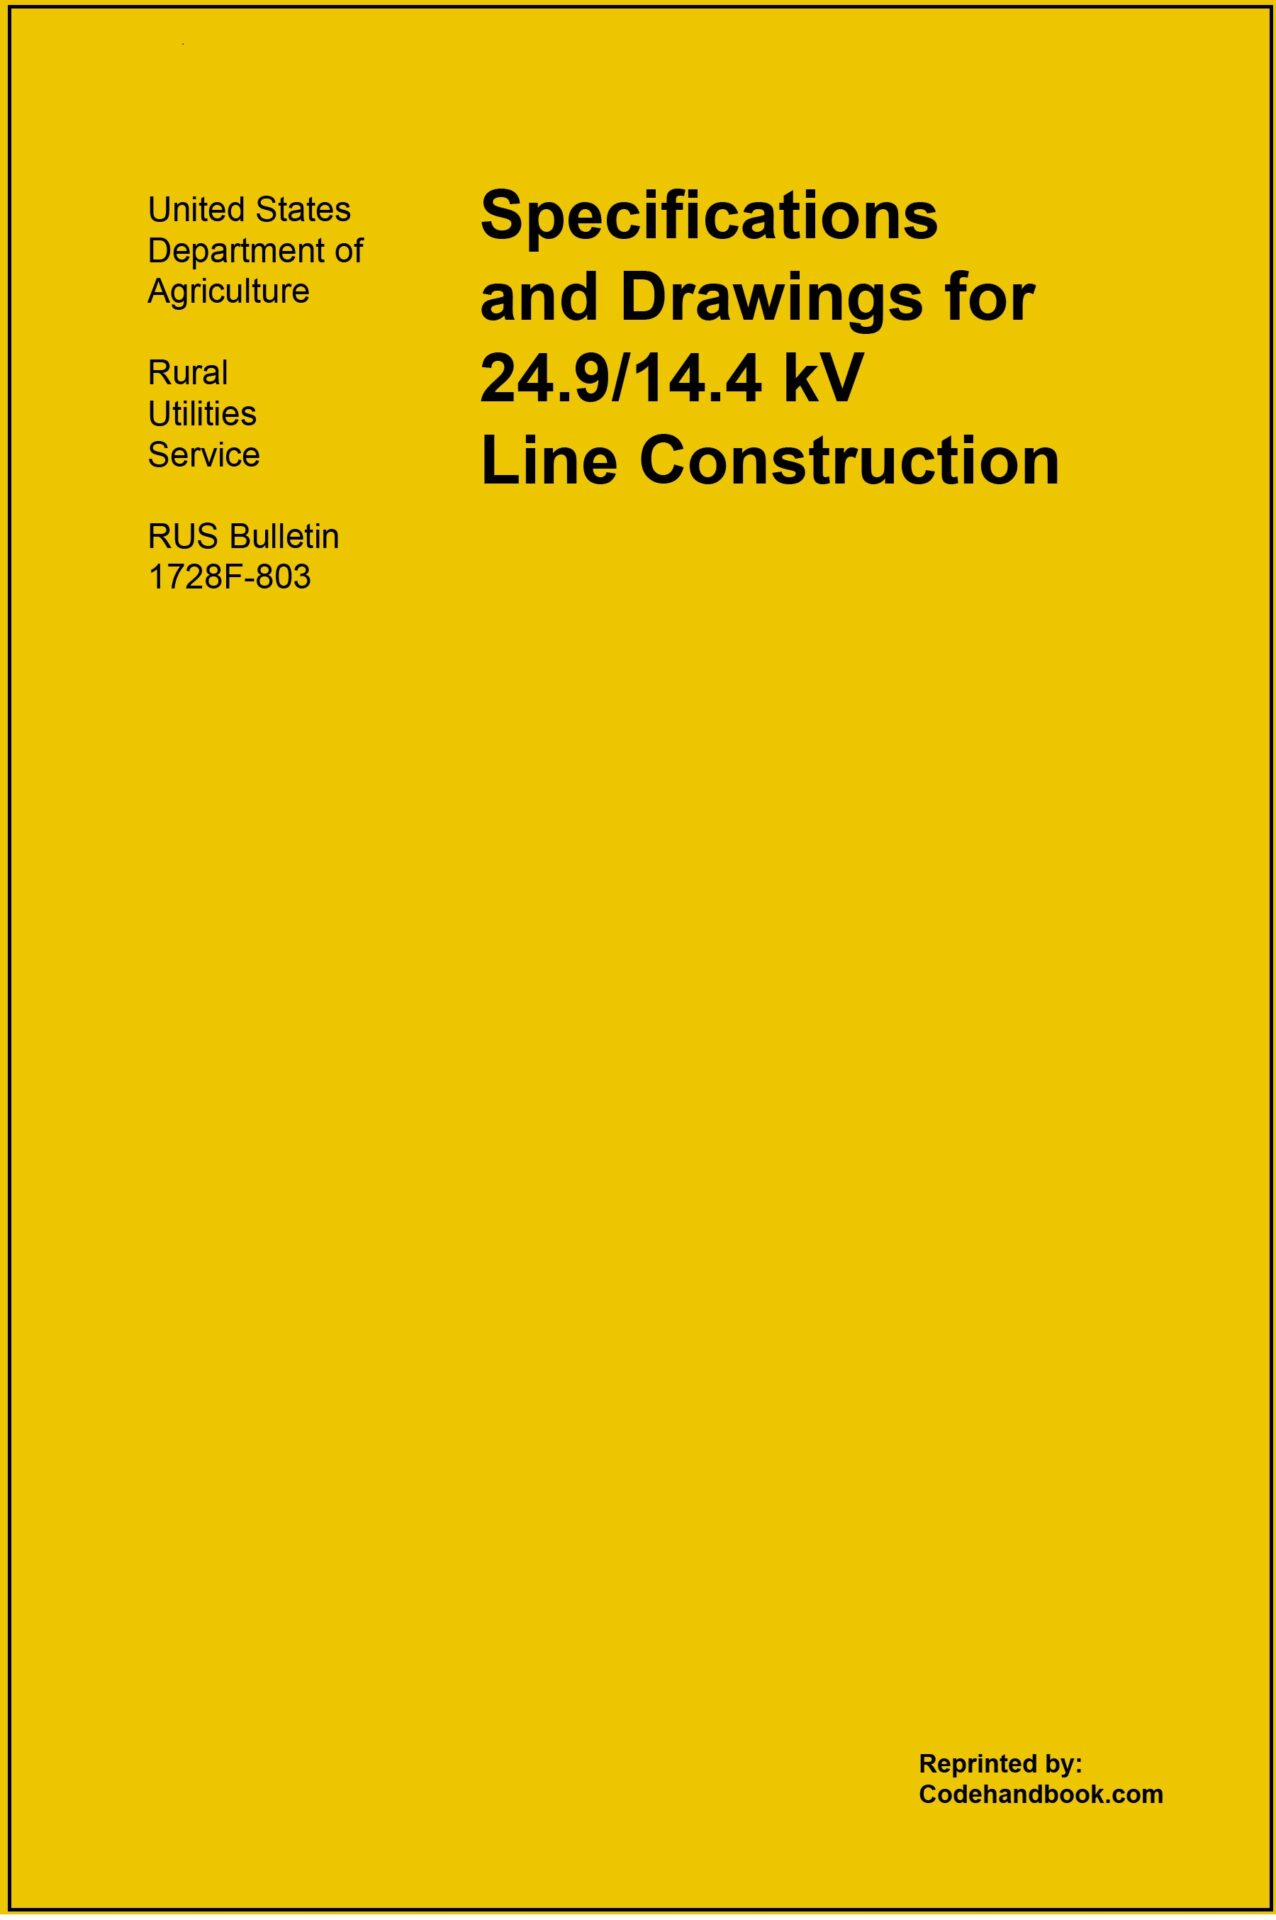 5 Spec Books cover - 24.9 - yellow border